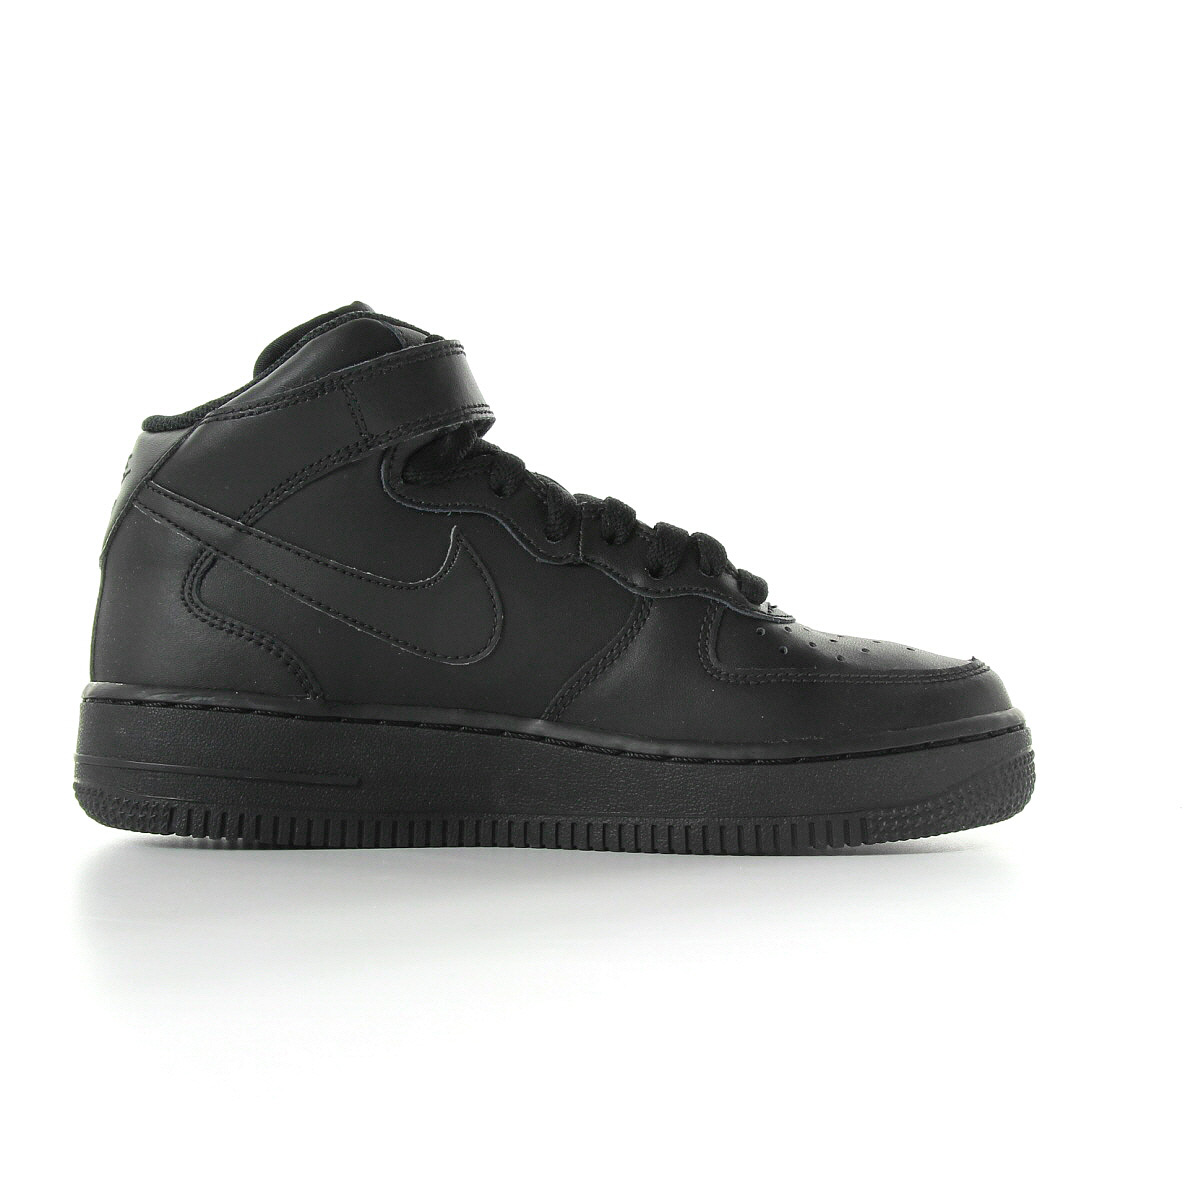 Garçon Nike '06gs314195004Baskets Mode Air 1 Force Mid lcF1TKJ